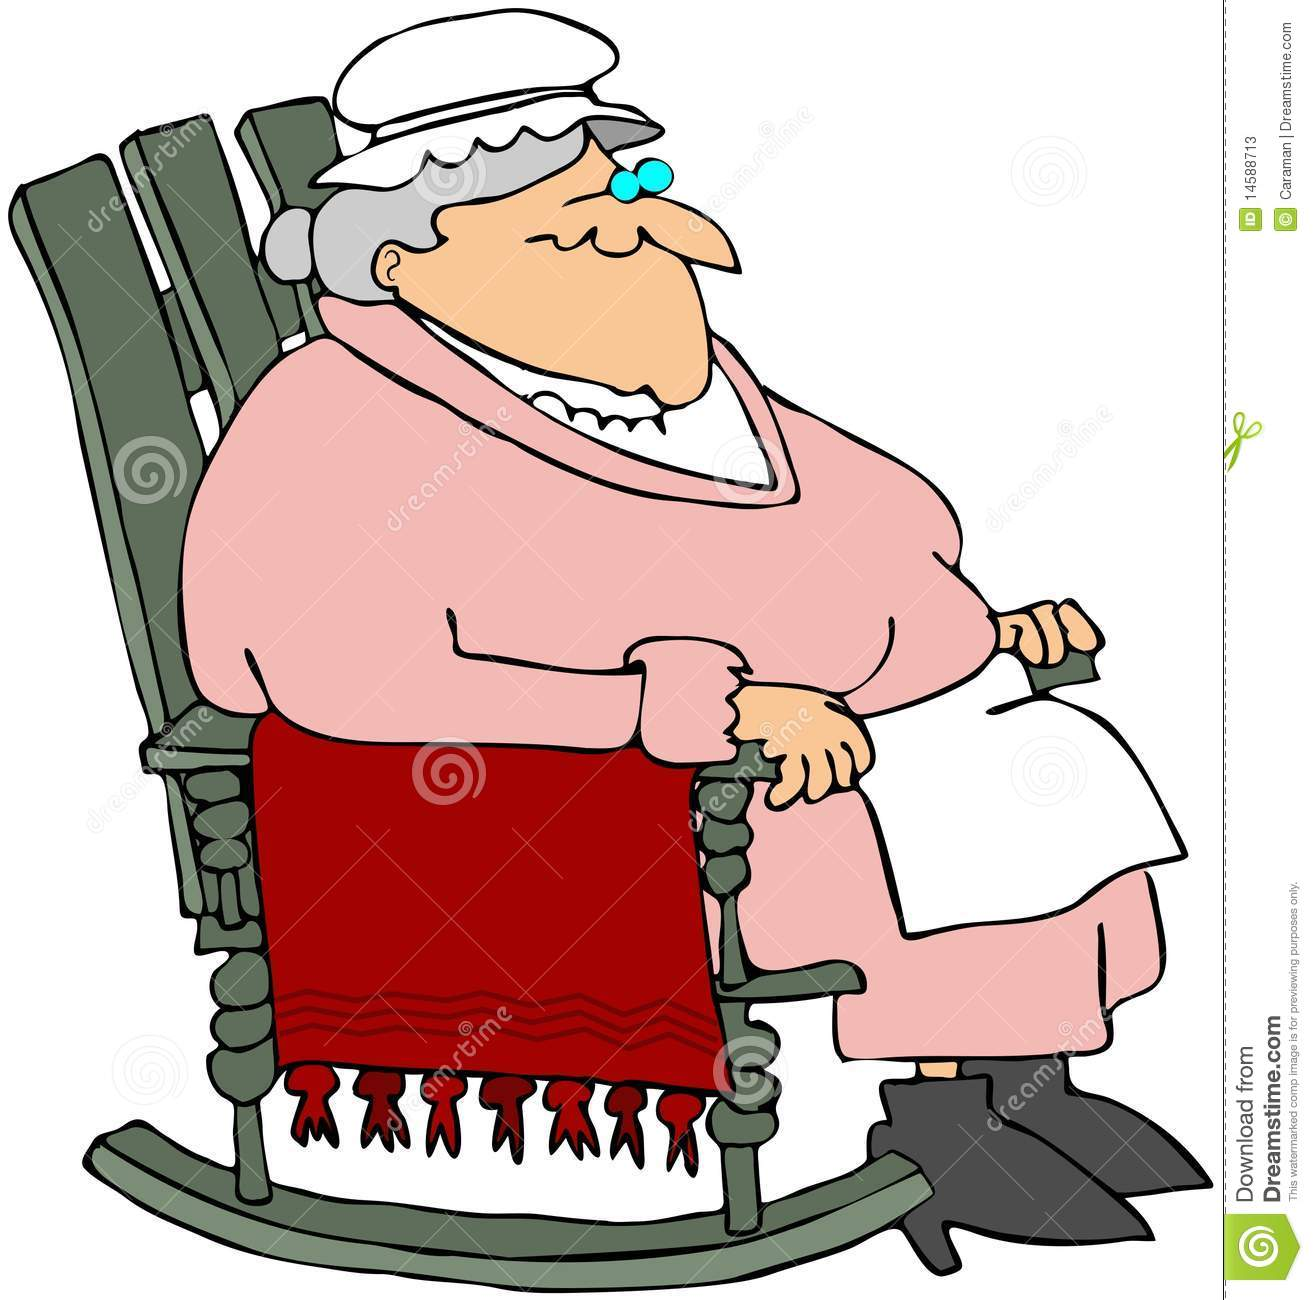 grandma rocking chair adjustable chairs without wheels in a stock illustration image of